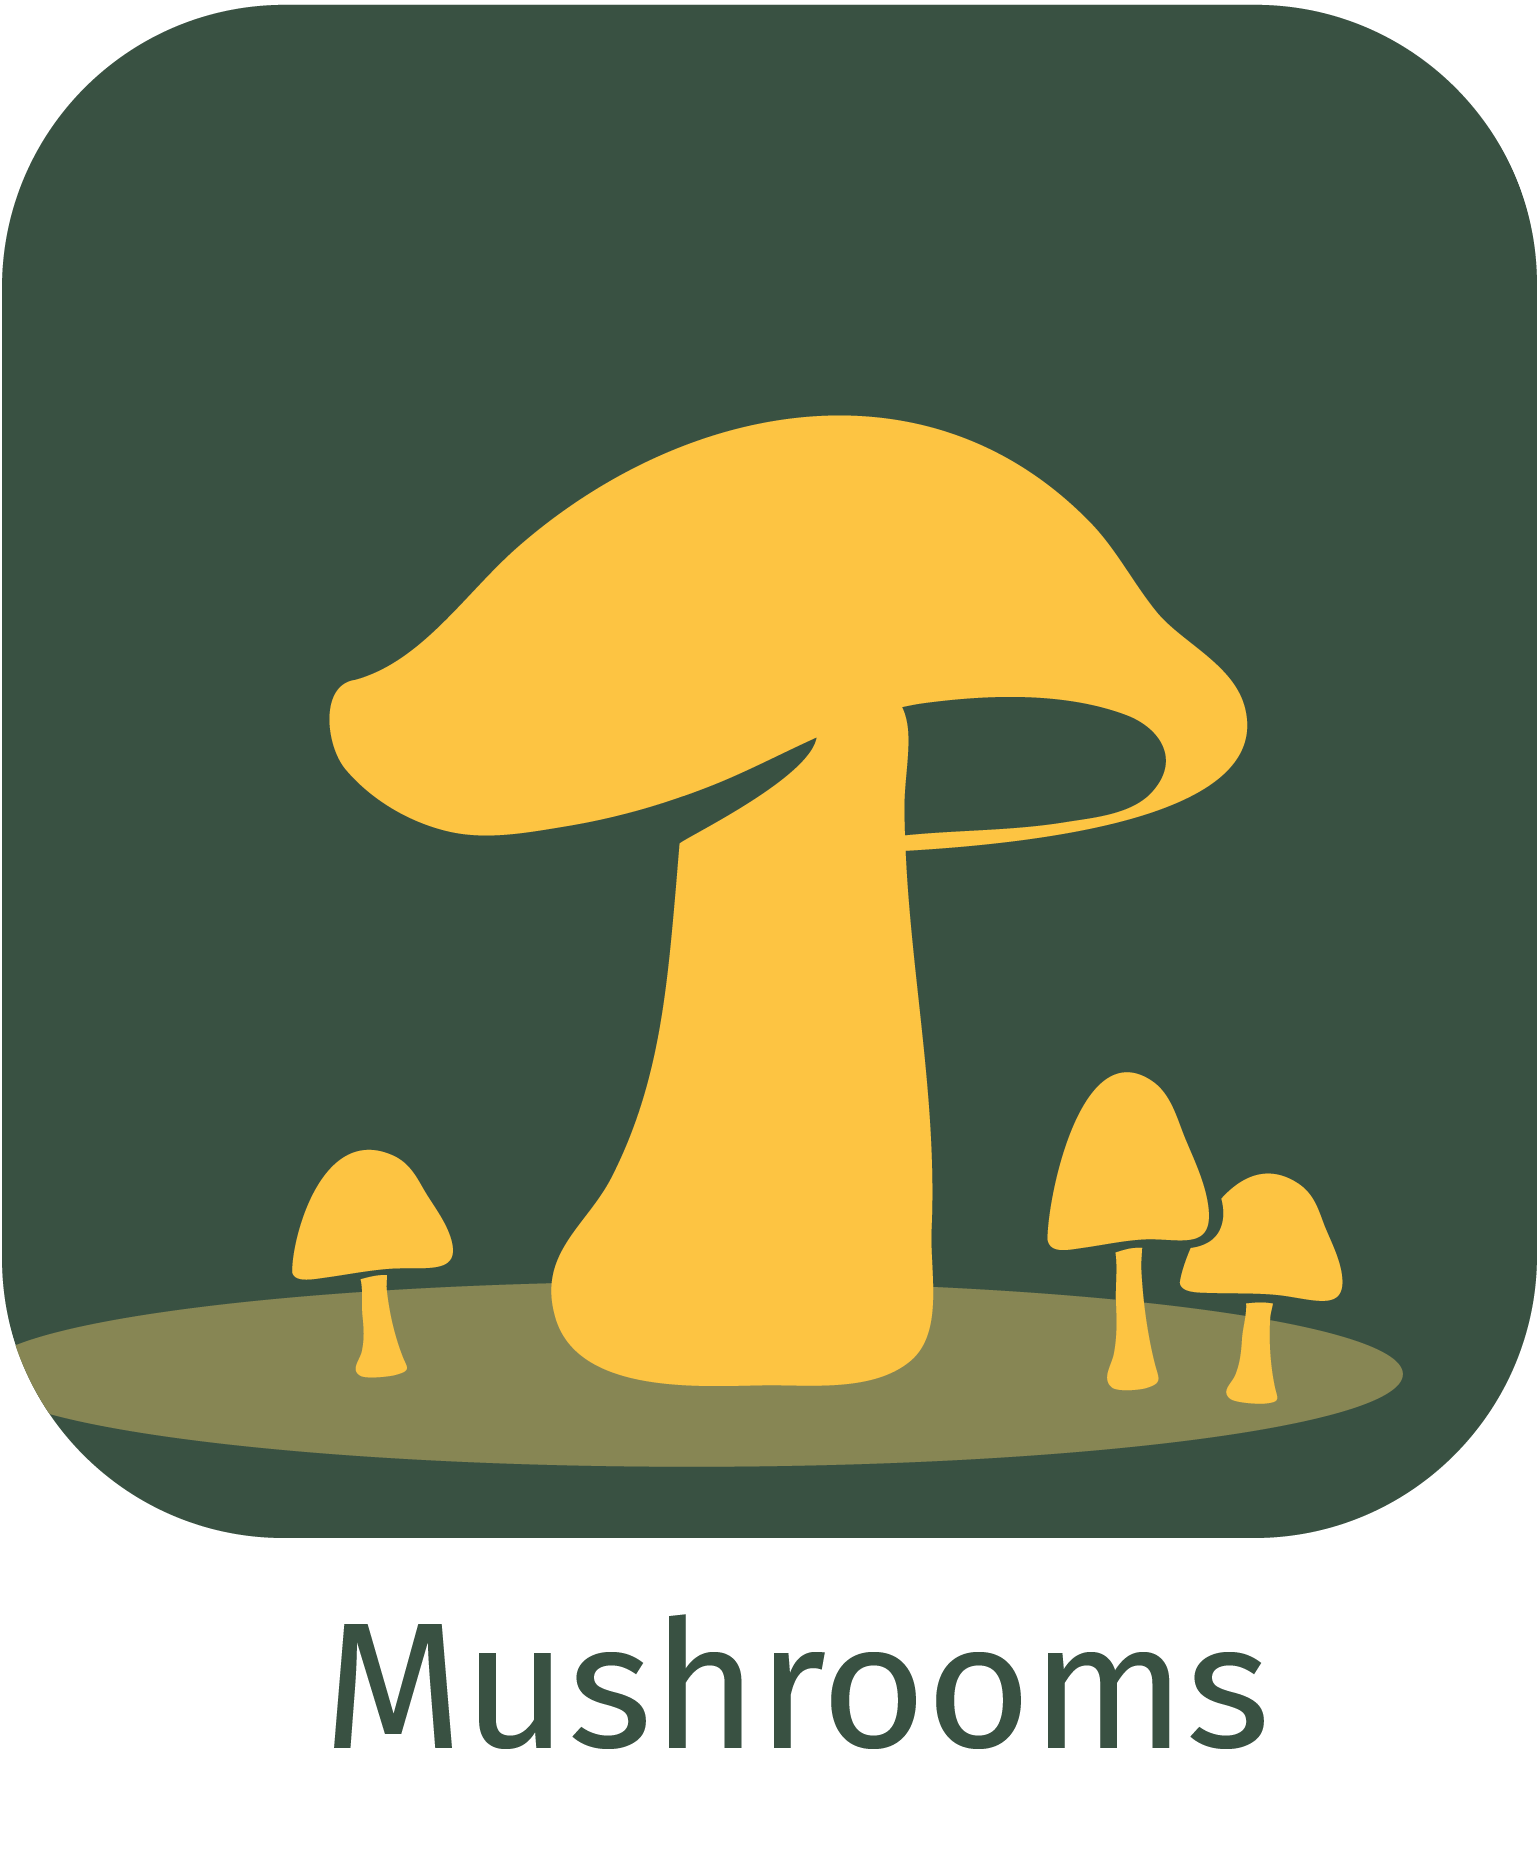 mushrooms app icon